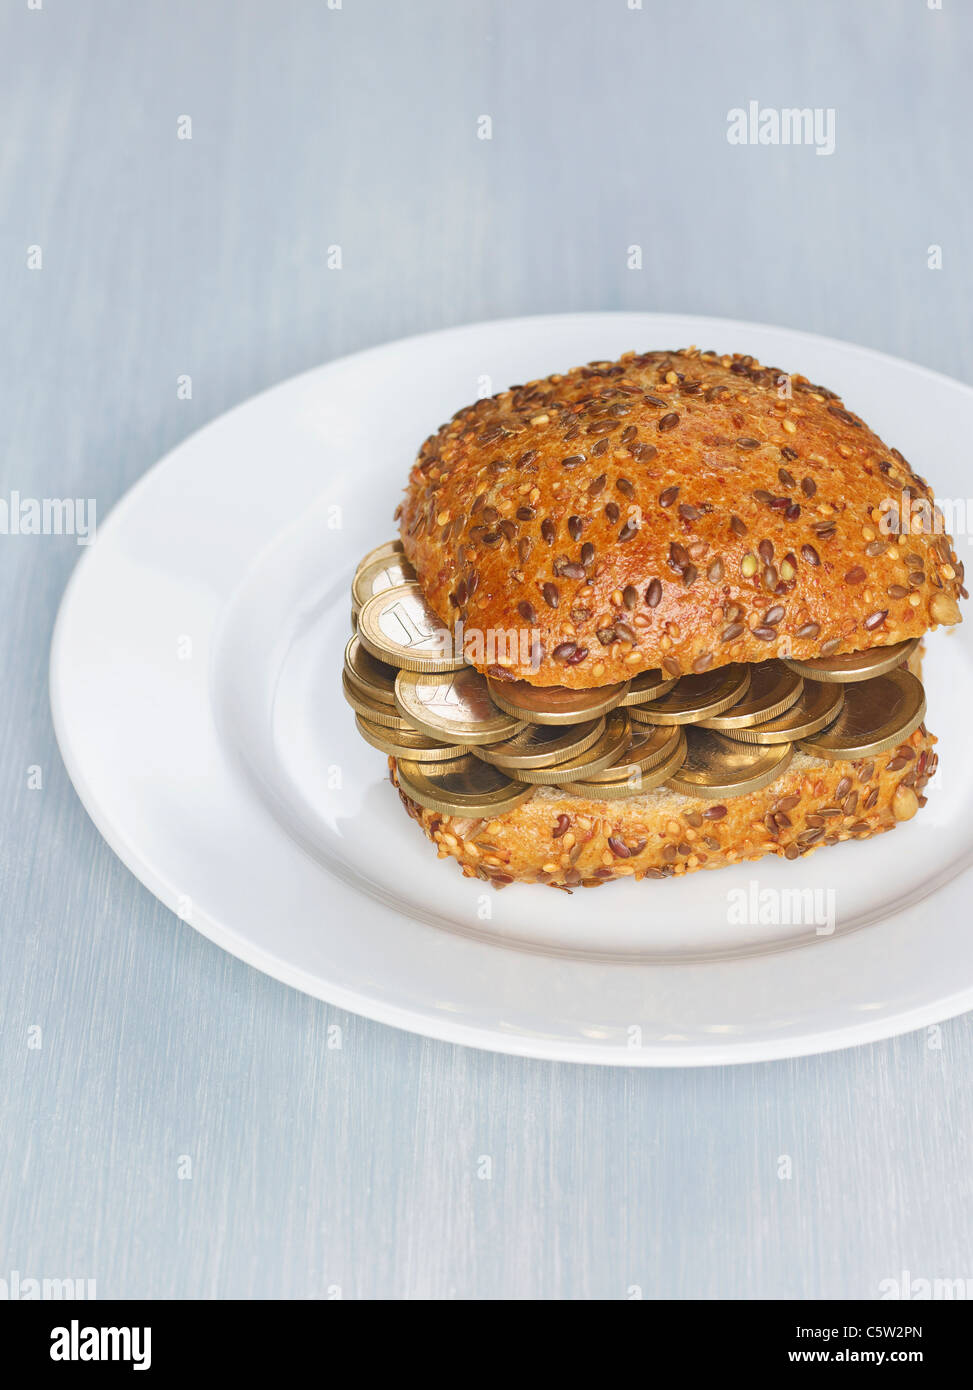 Bread roll with 1 Euro coins on plate - Stock Image